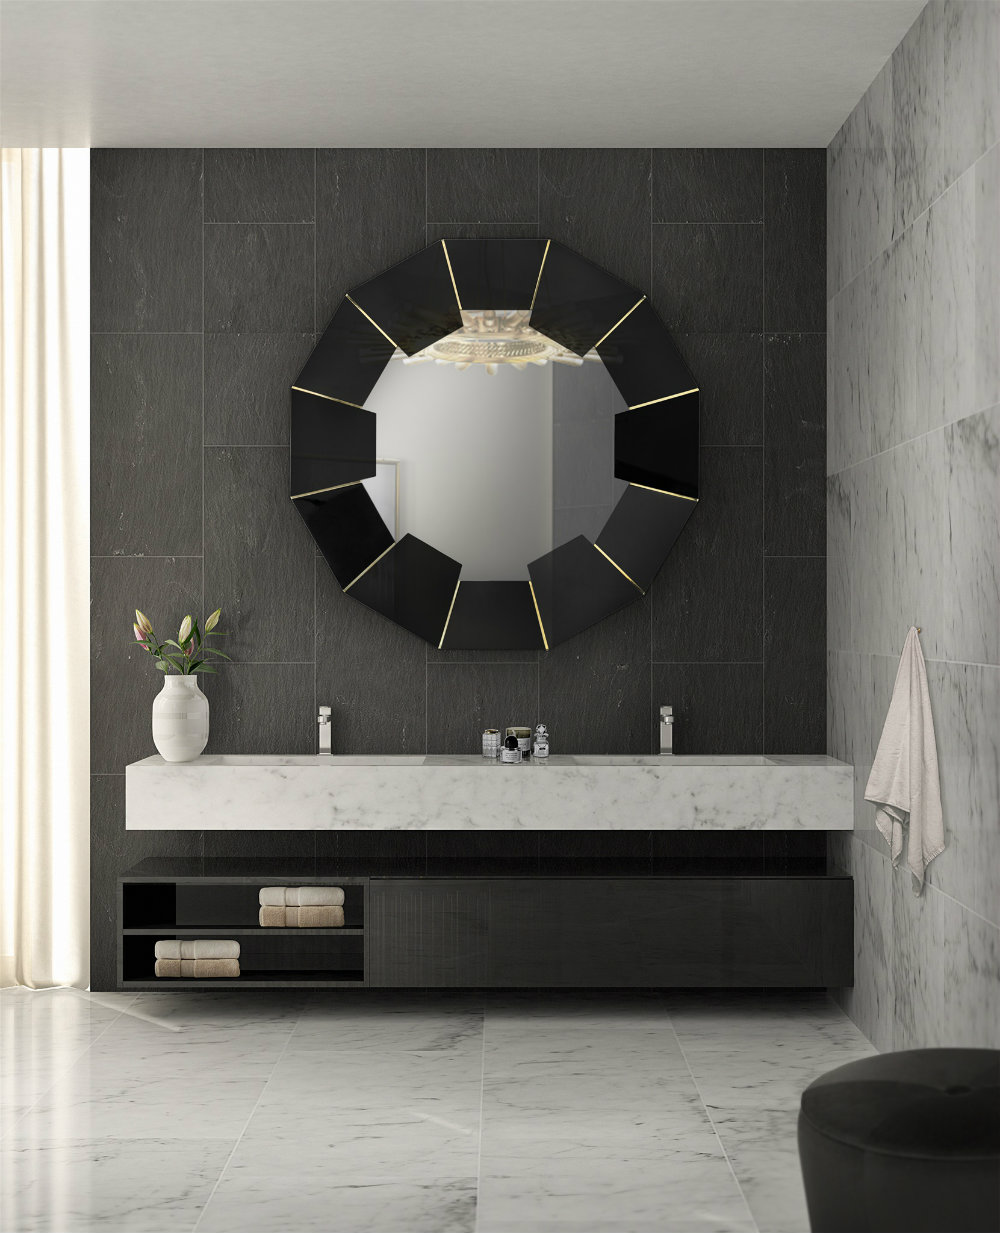 10 Luxury Bathrooms For The Master Bedroom Of Your Dreams 08 luxury bathrooms 10 Luxury Bathrooms For The Master Bedroom Of Your Dreams 10 Luxury Bathrooms For The Master Bedroom Of Your Dreams 08